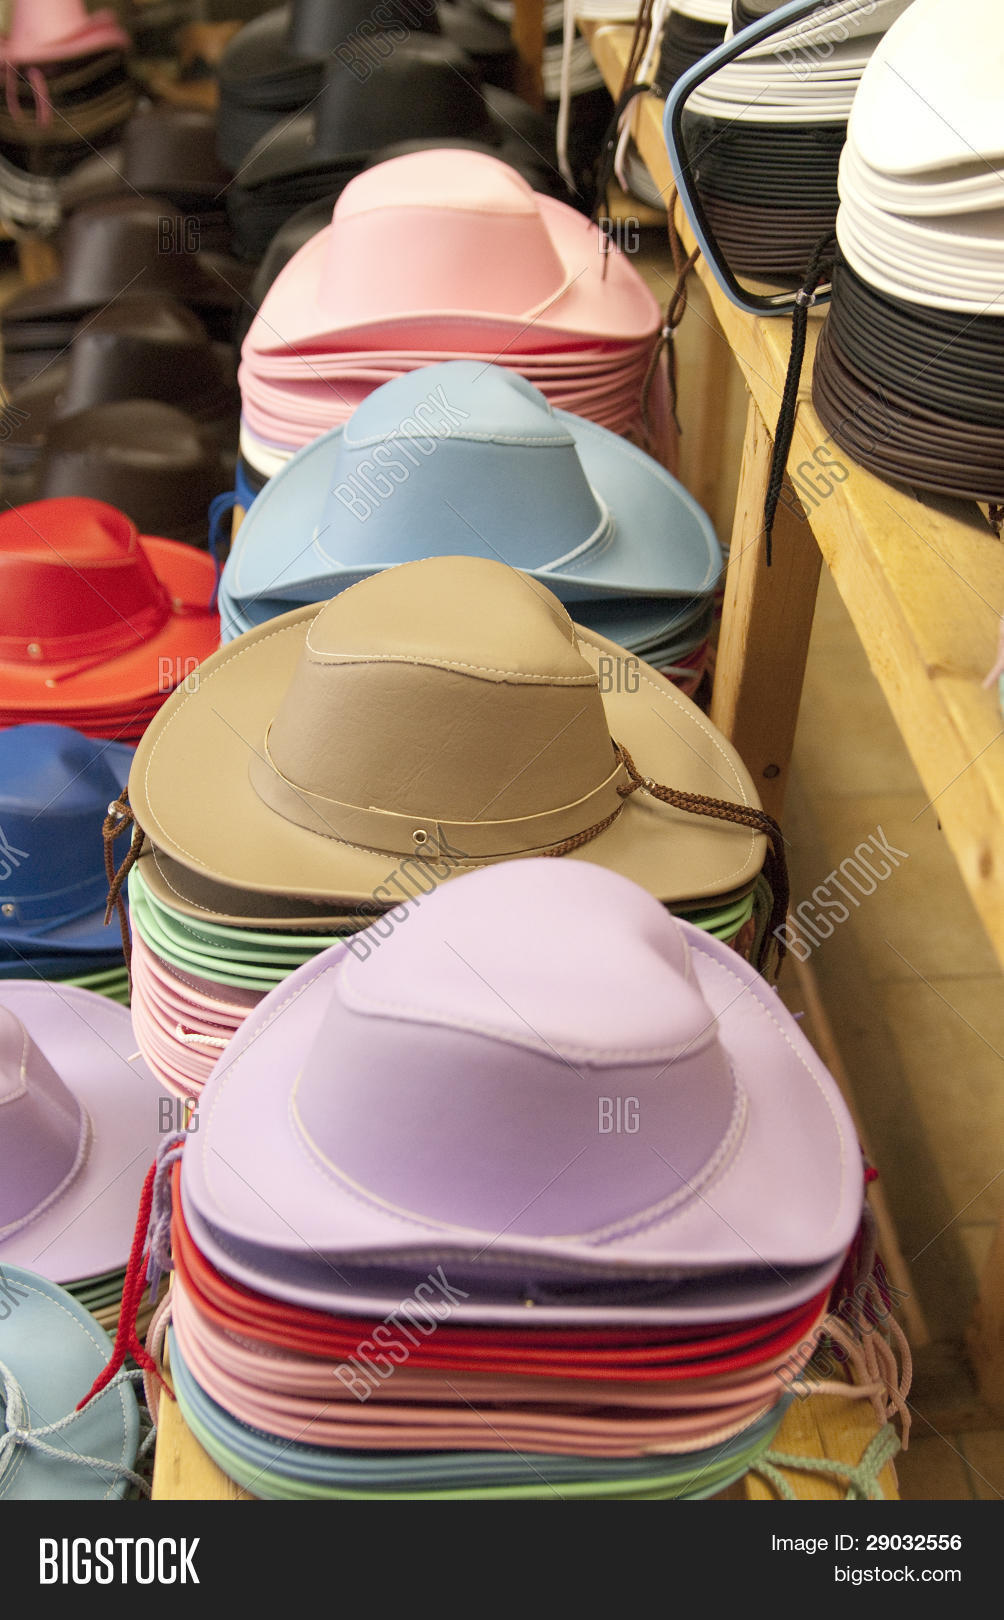 a75dfc7e4387b This is some stacks of colorful cowboy hats for kid in a store of the western  festival of St-Tite.